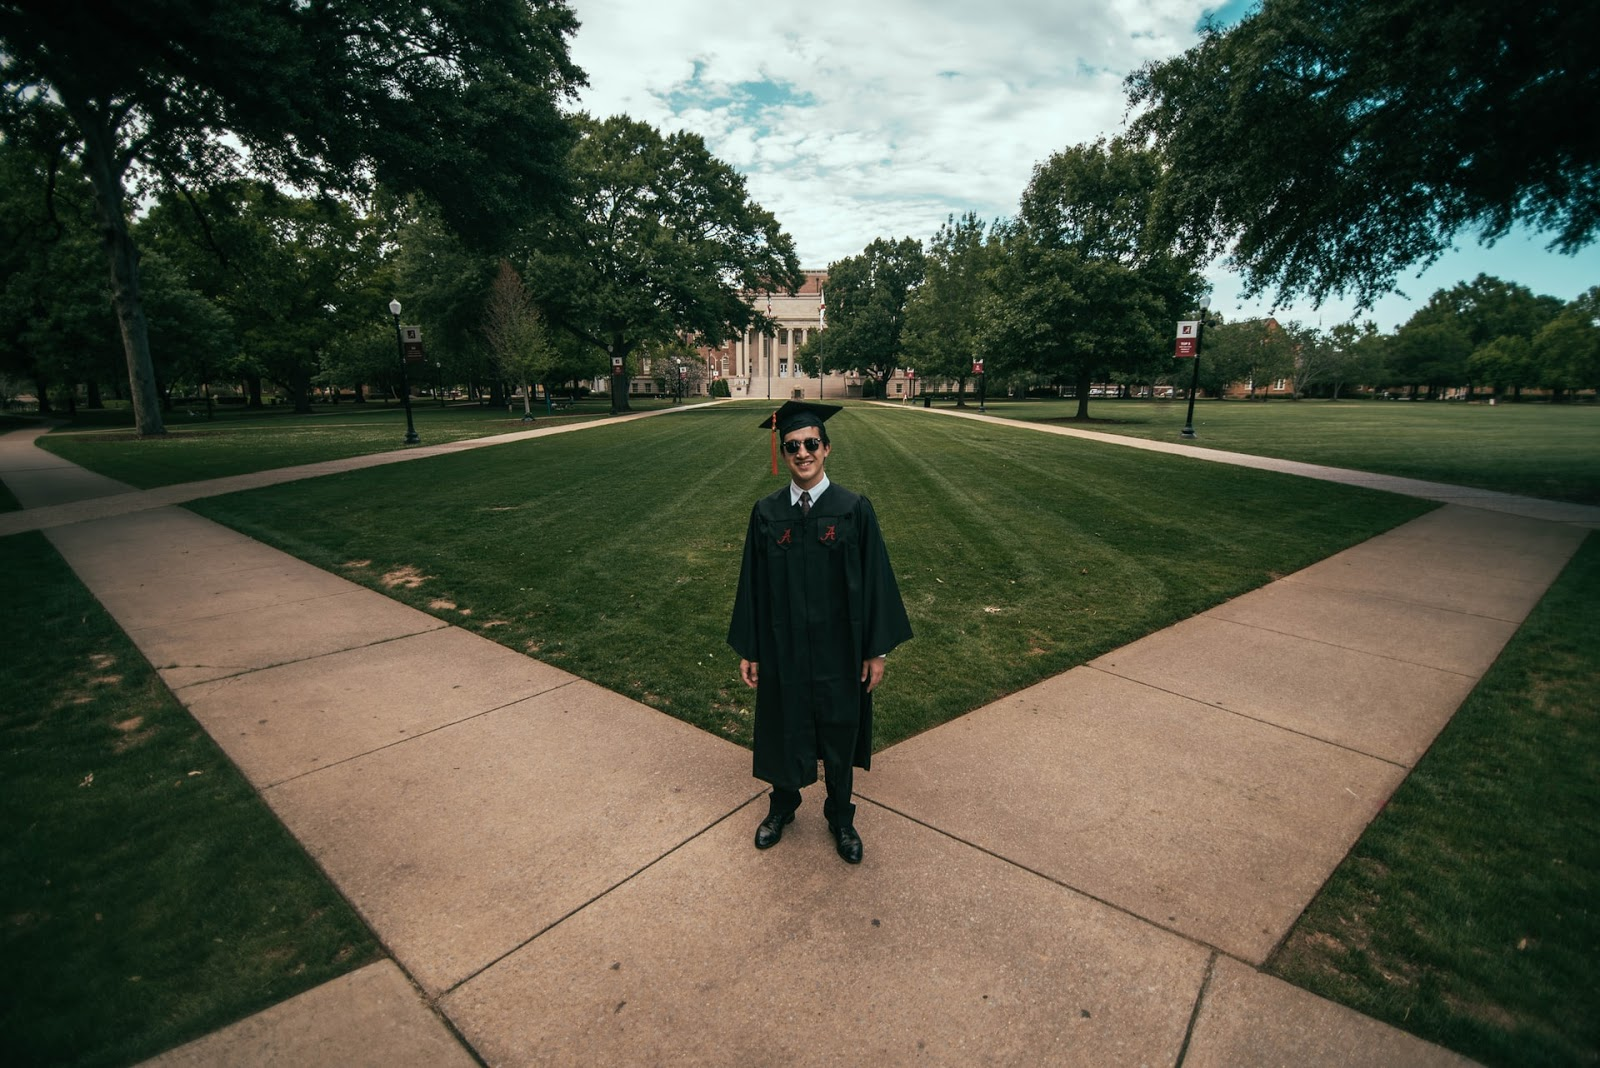 college graduate in a cap, gown, and sunglasses stands at the intersection of two sidewalks on the campus green